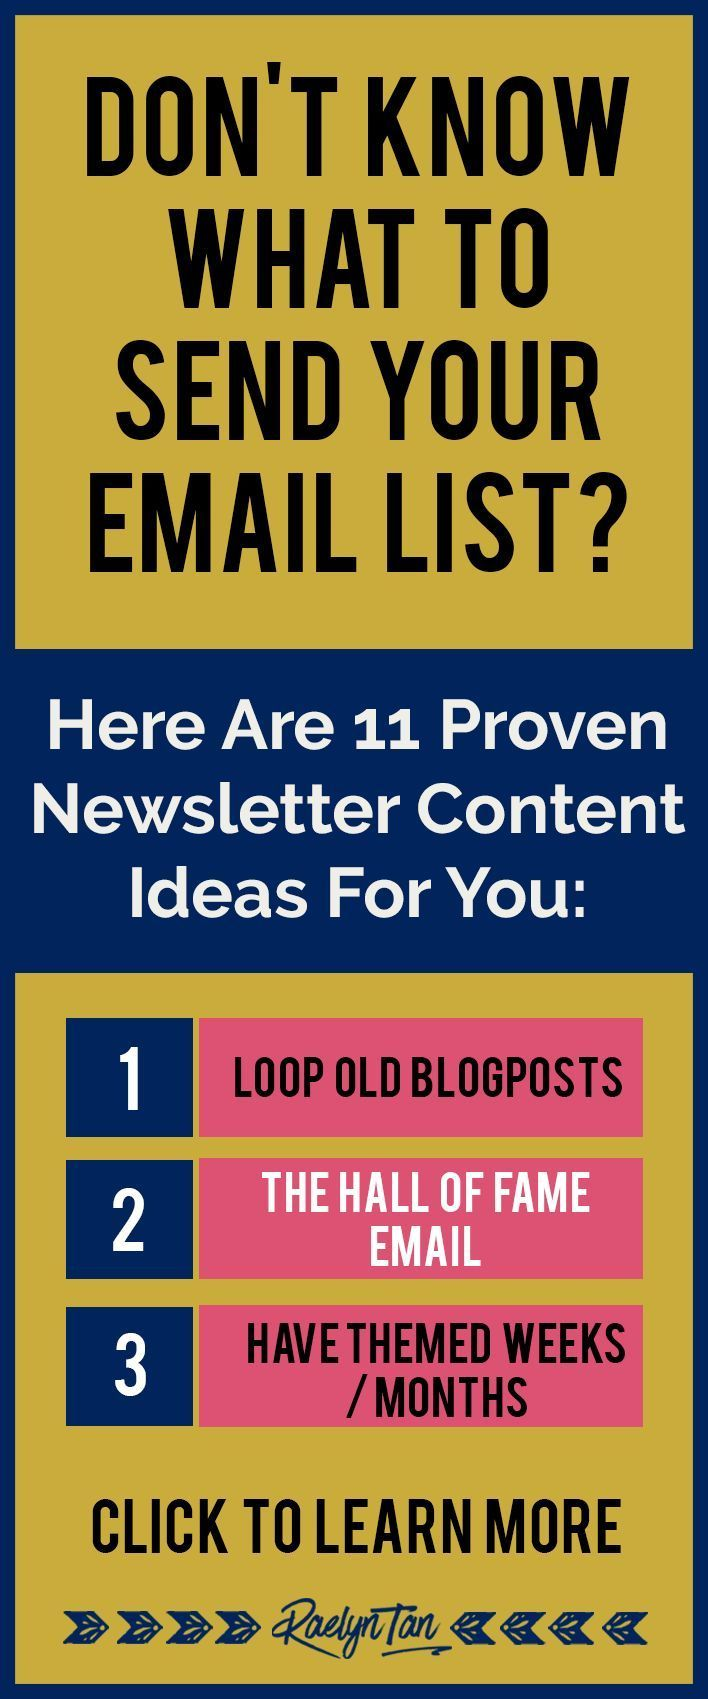 What to send your subscribers: Here are 11 newsletter content ideas that are absolutely amazing! Get your subscribers engaged and uplevel your email marketing for your blog + business.